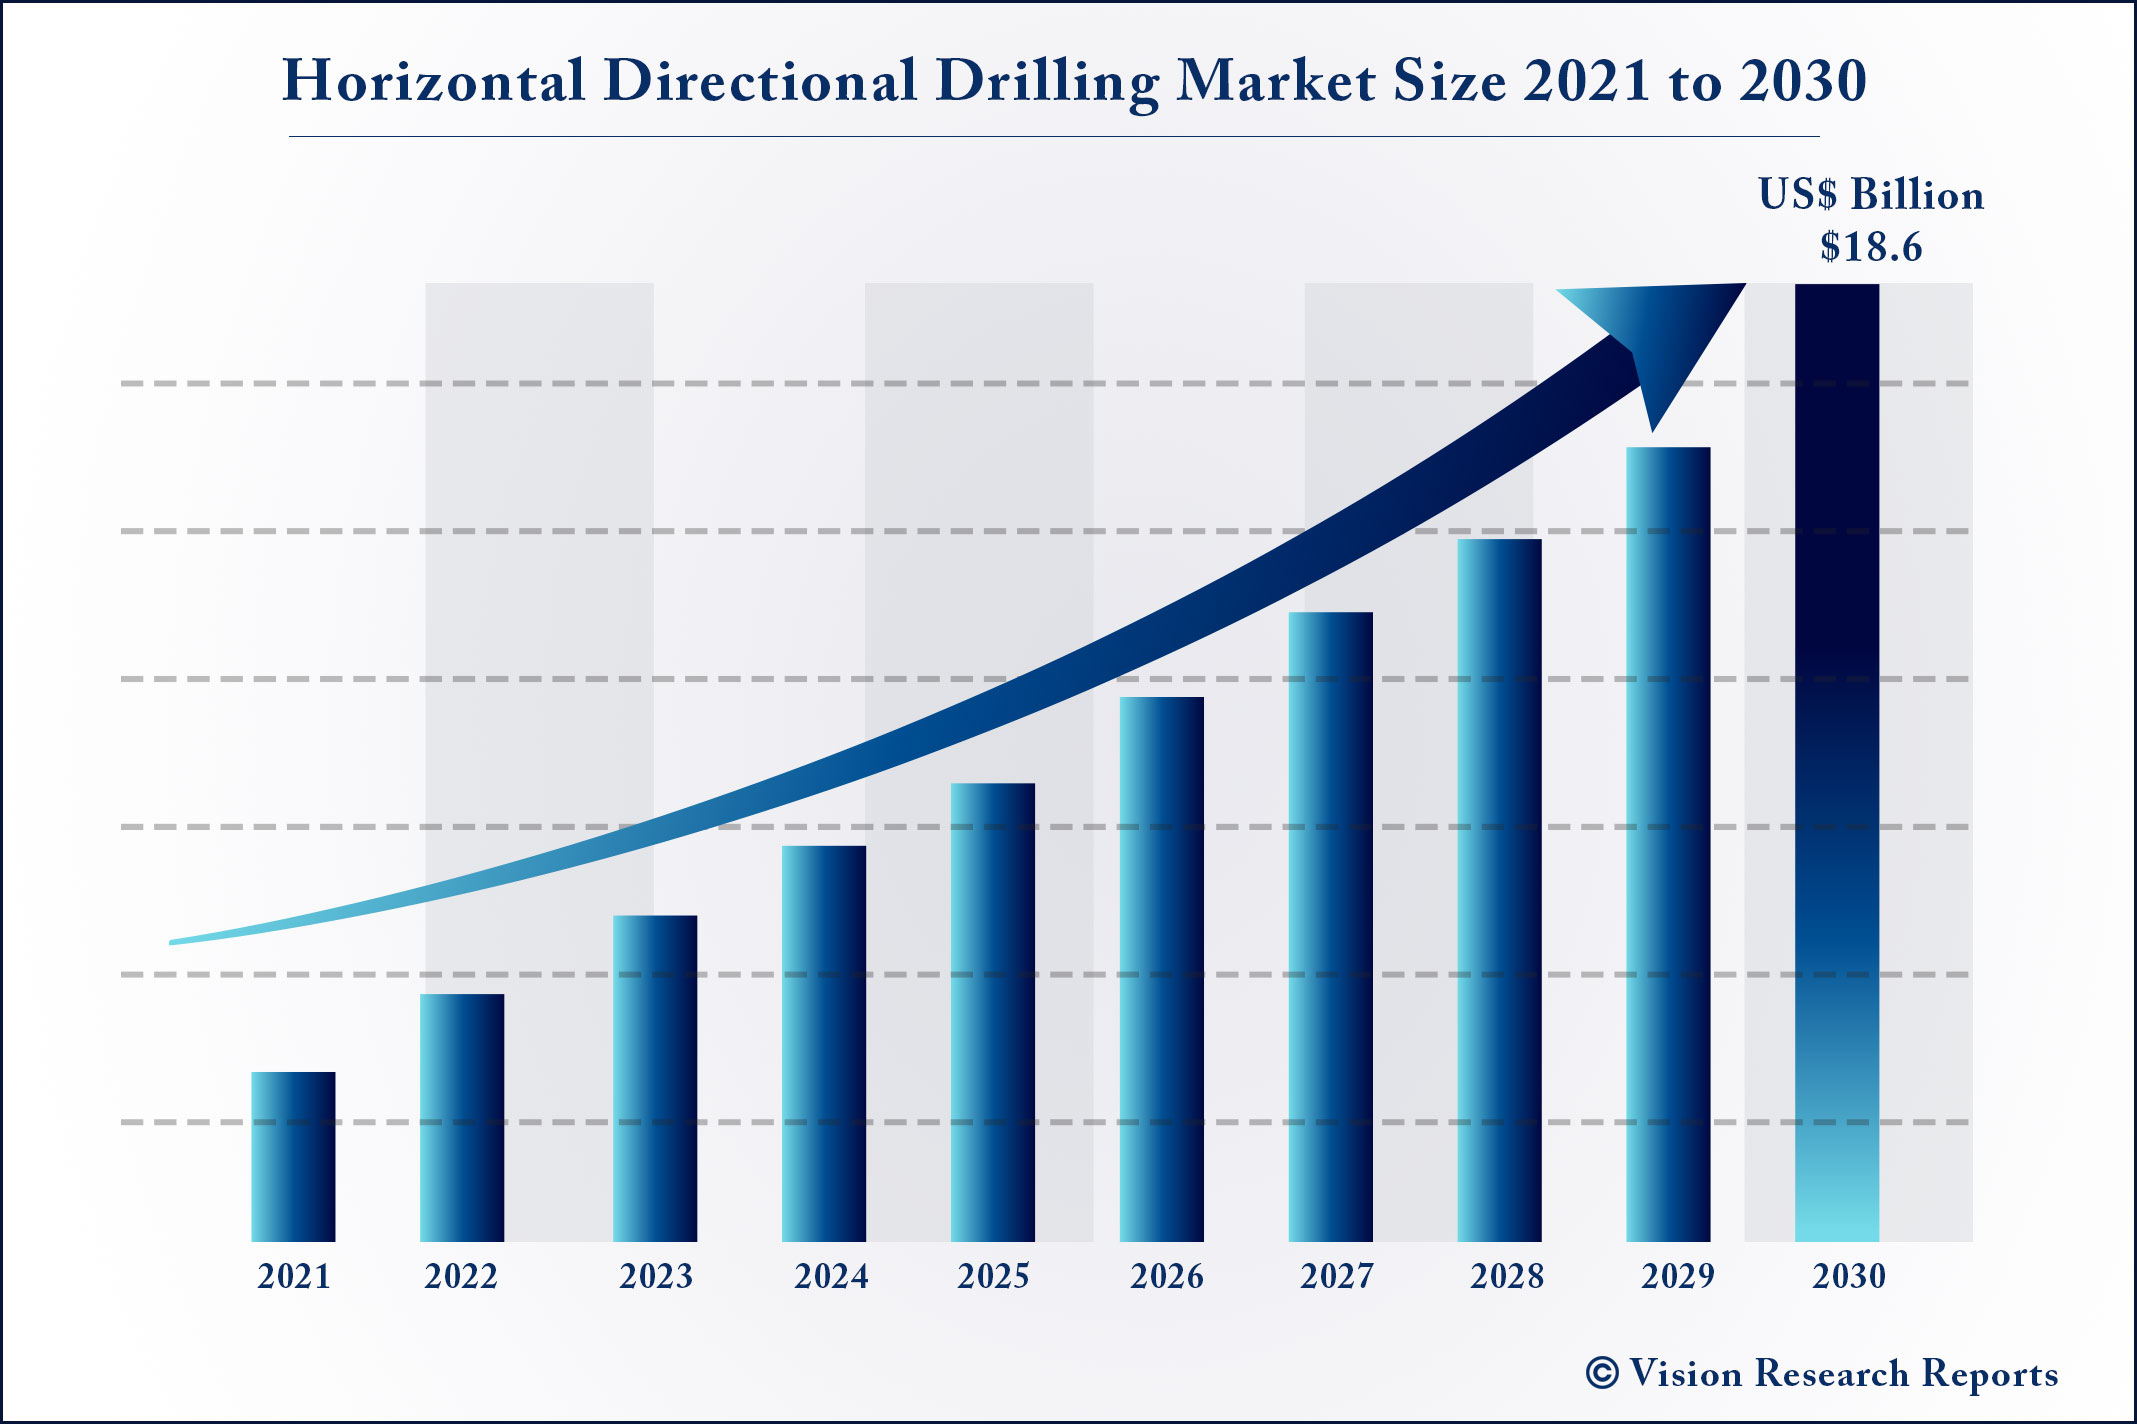 Horizontal Directional Drilling Market Size 2021 to 2030